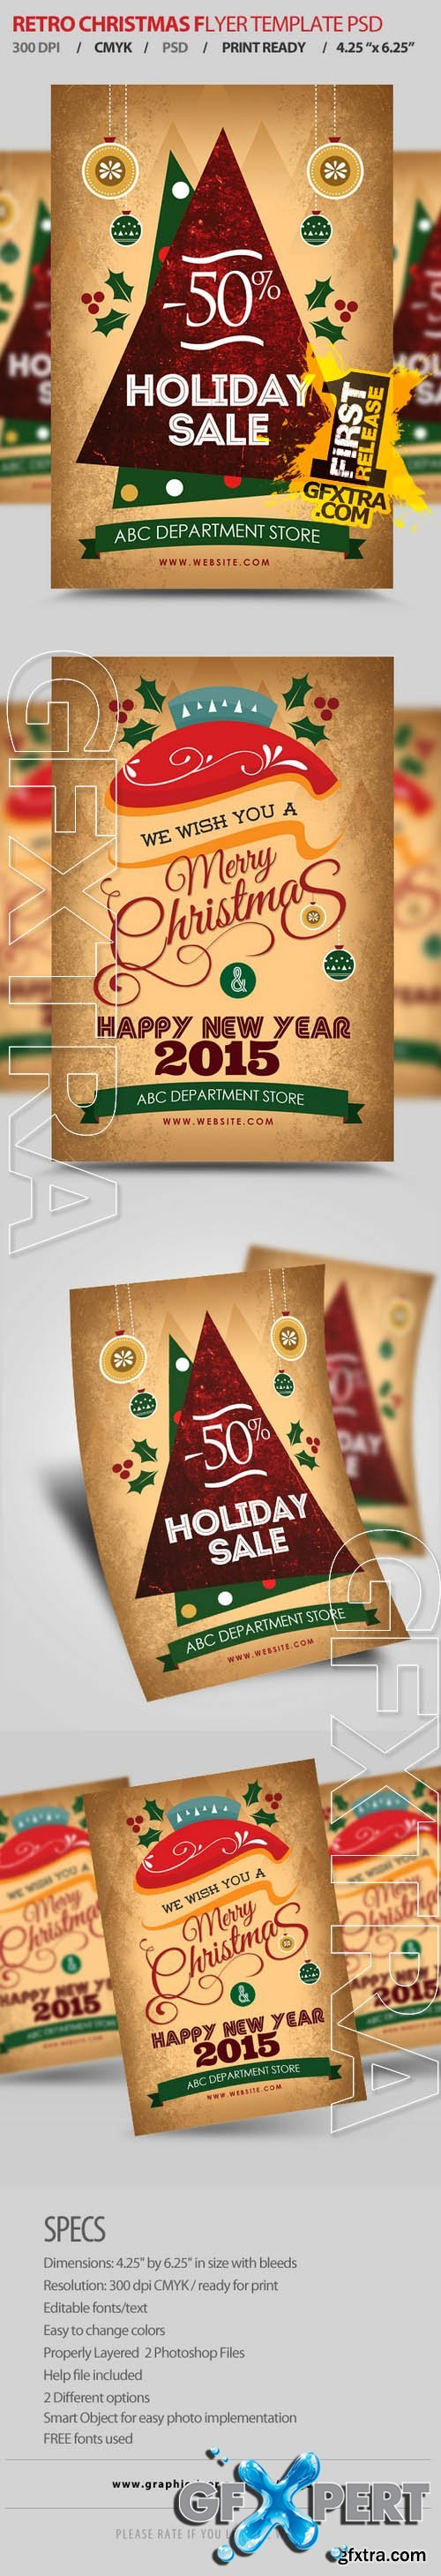 New Year / Christmas Flyers - Creativemarket 92832